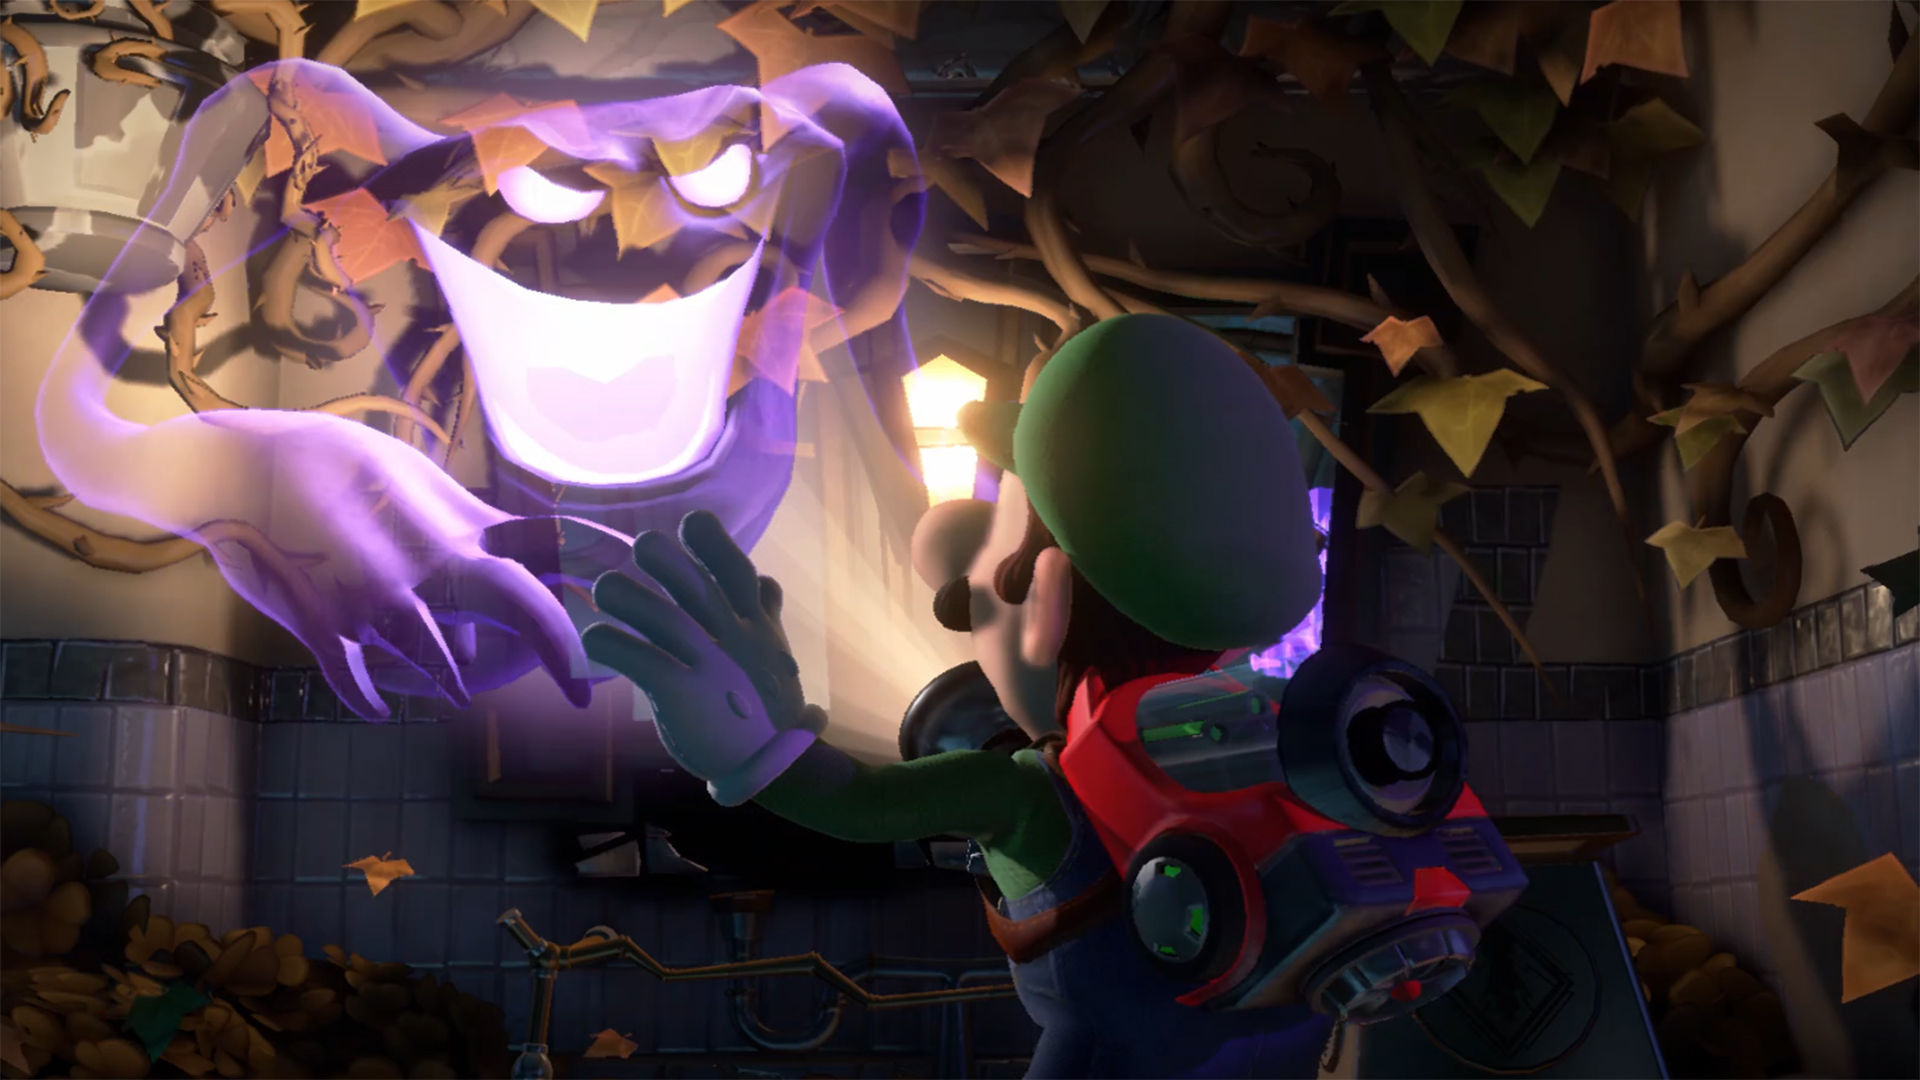 Luigi S Mansion 3 Update 1 2 1 Is Live Fixes Achievement Issue